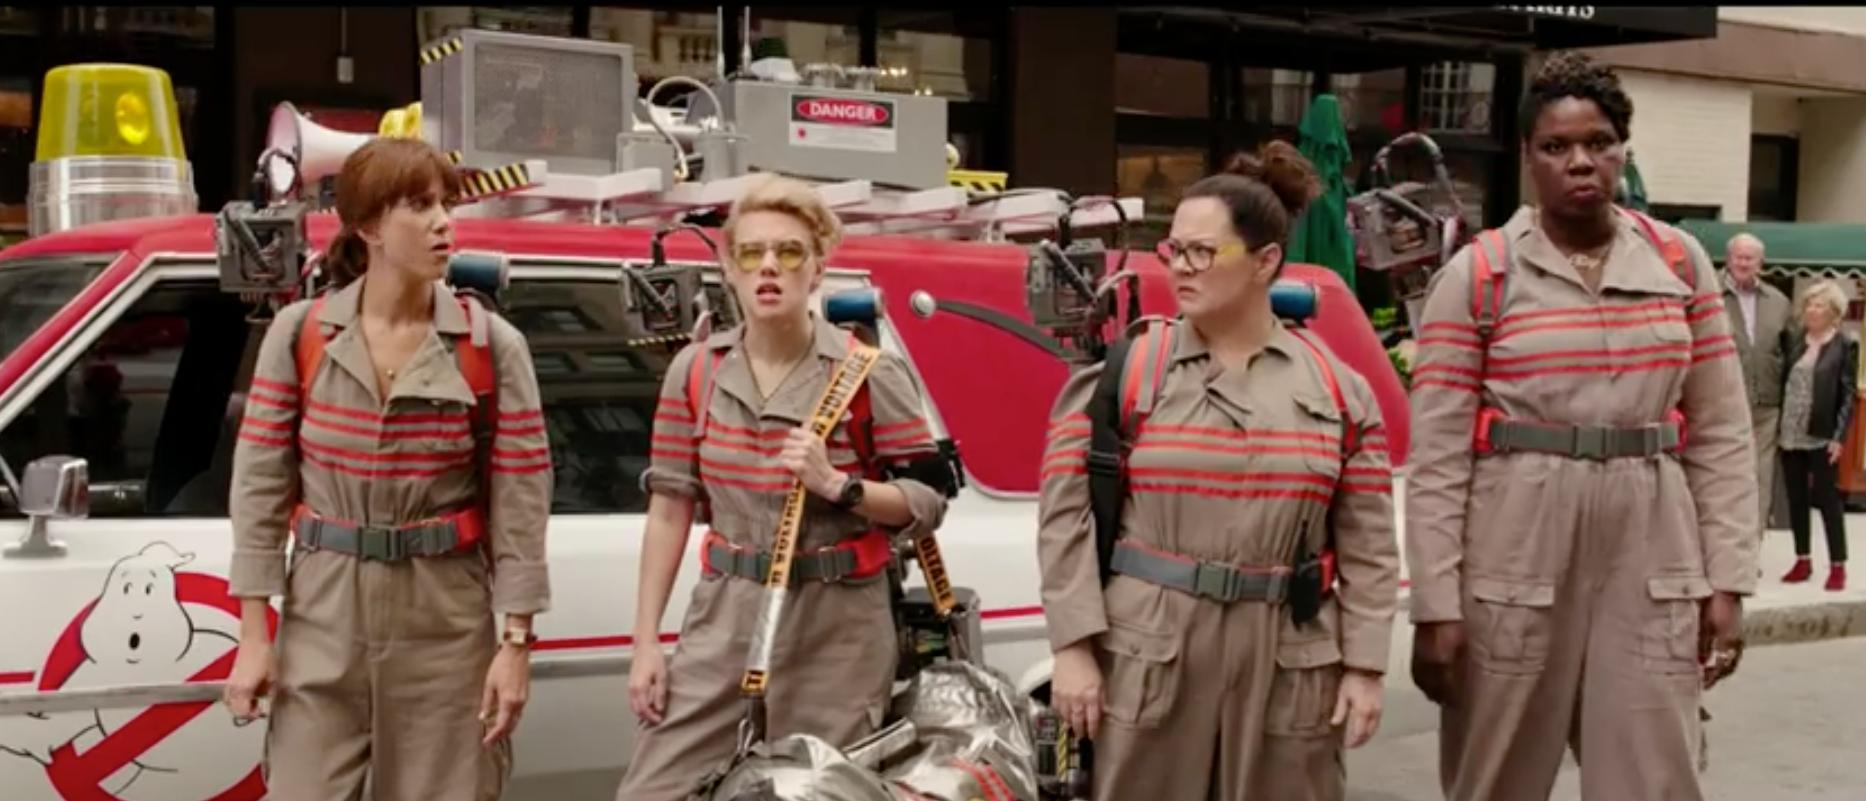 Ghostbusters trailer screen grab